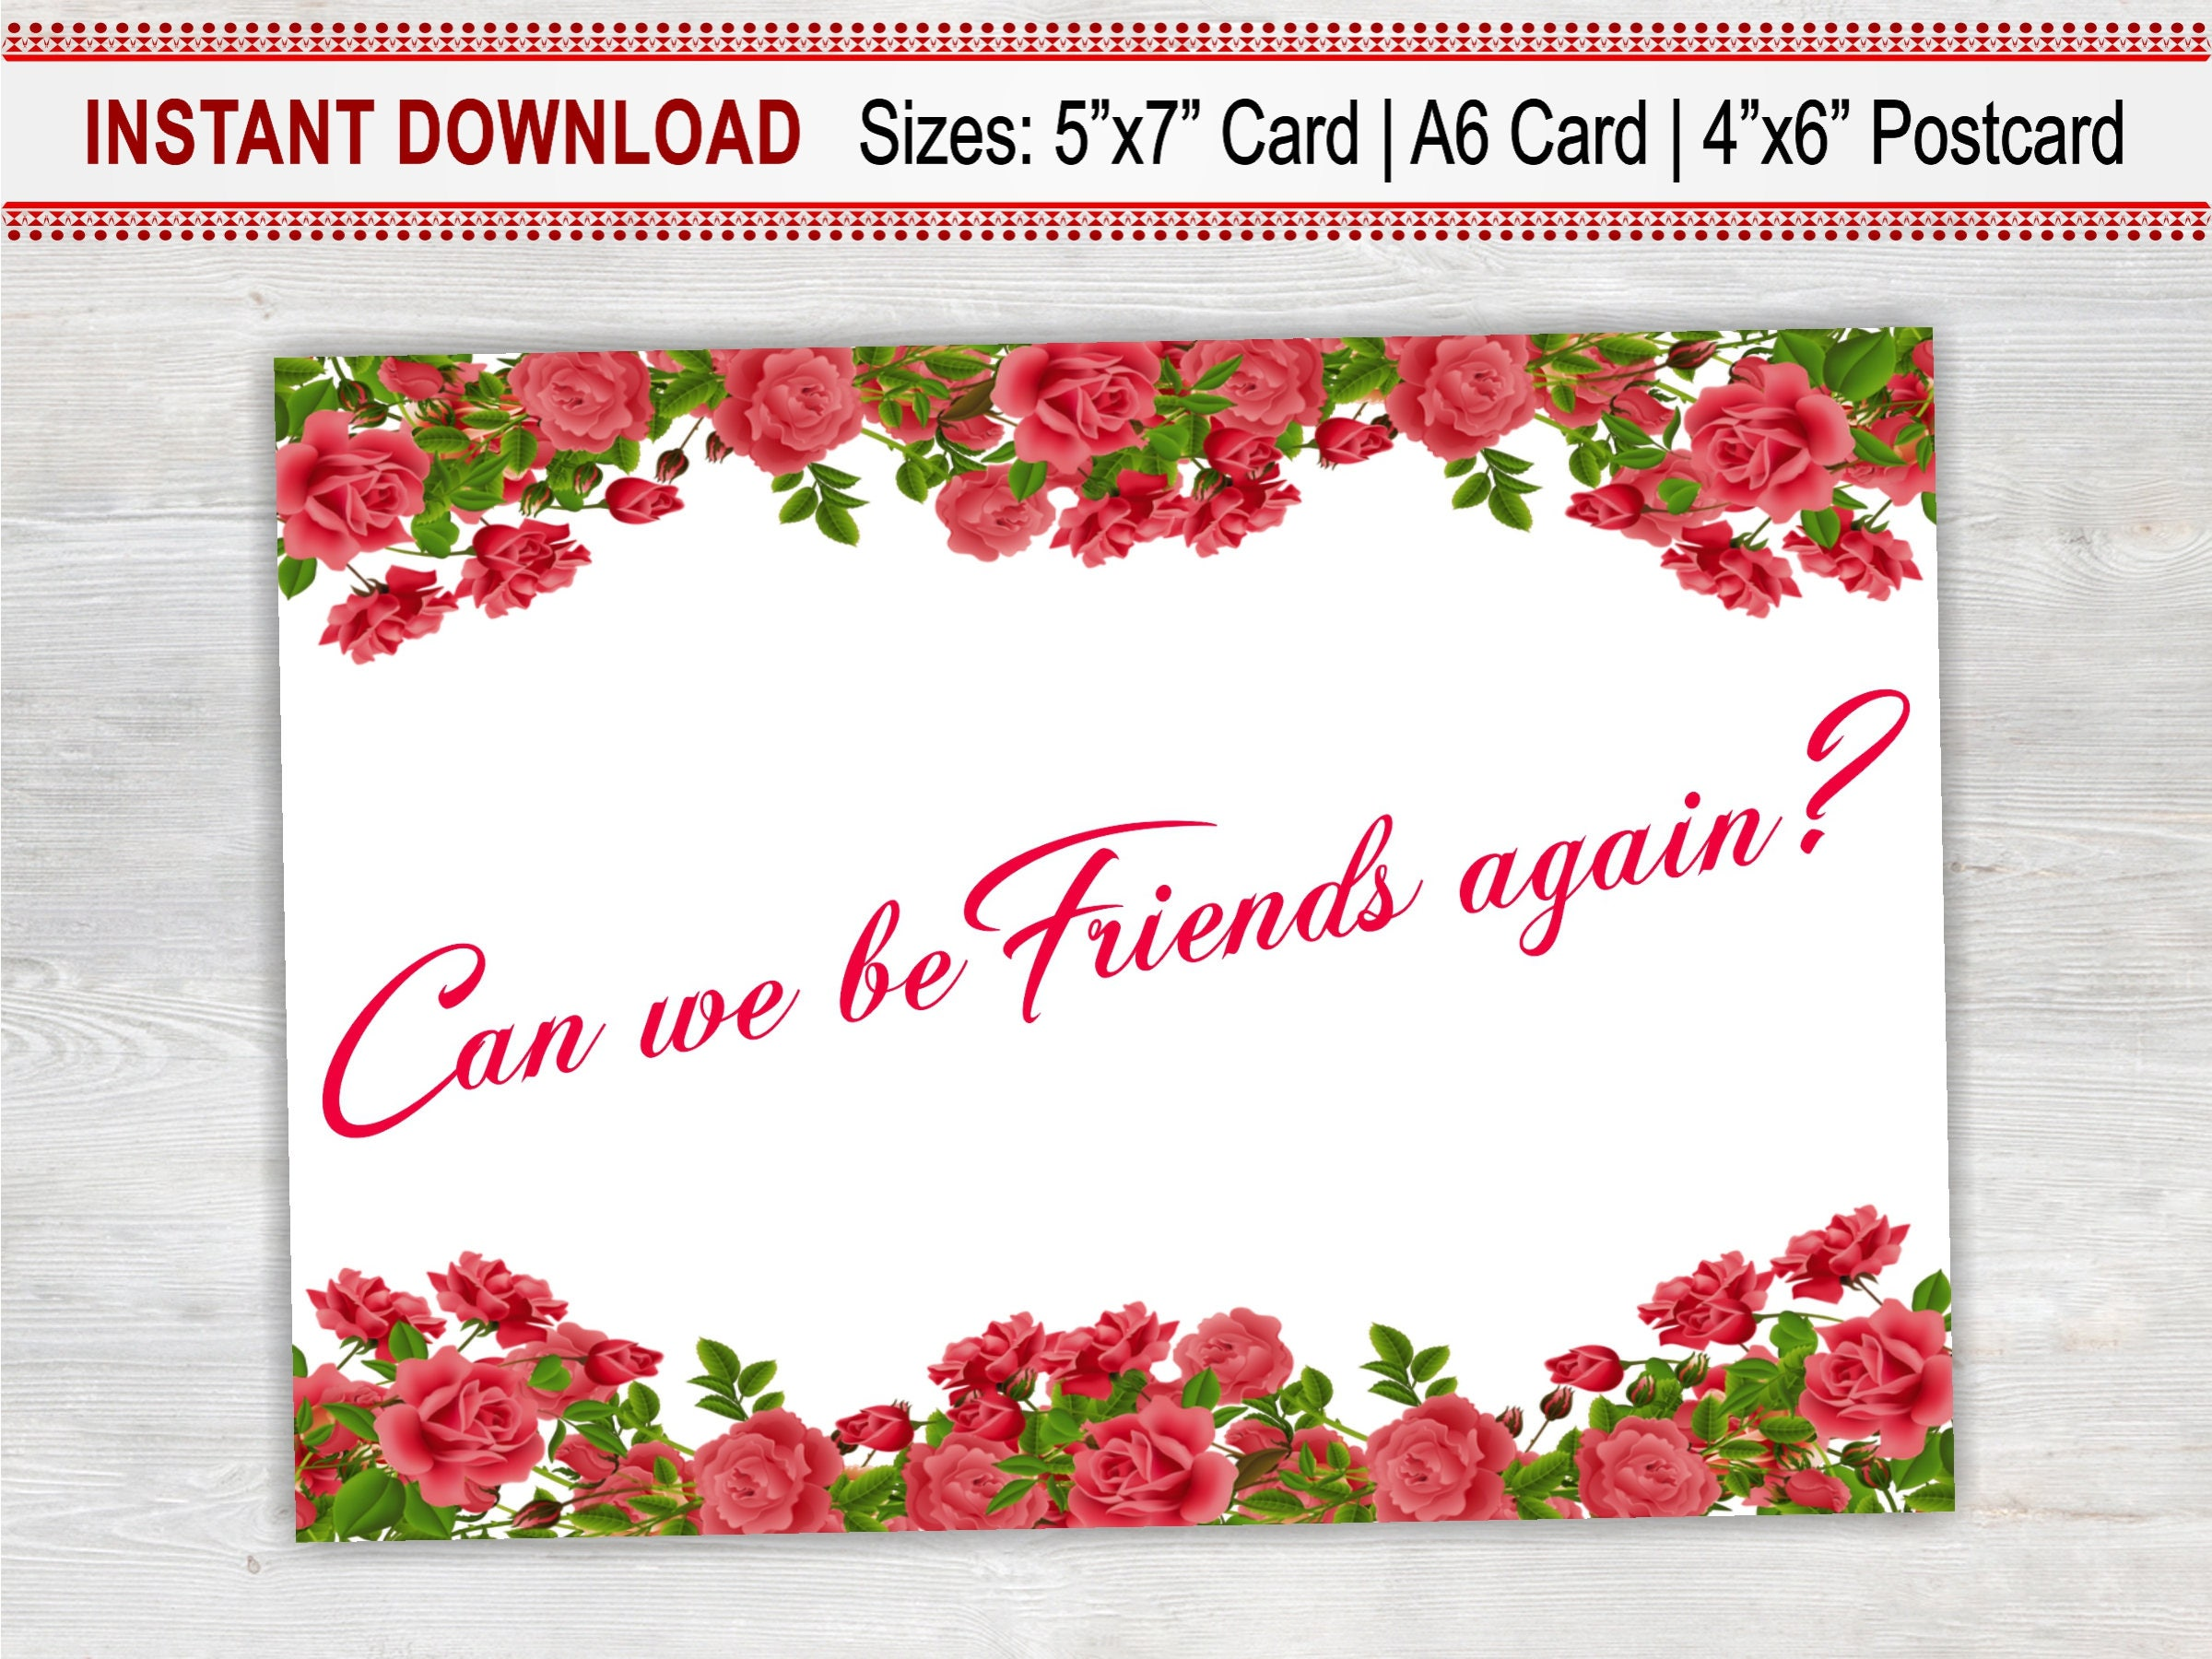 Can we be friends again printable card floral card sorry card for can we be friends again printable card floral card sorry card for friend kristyandbryce Gallery